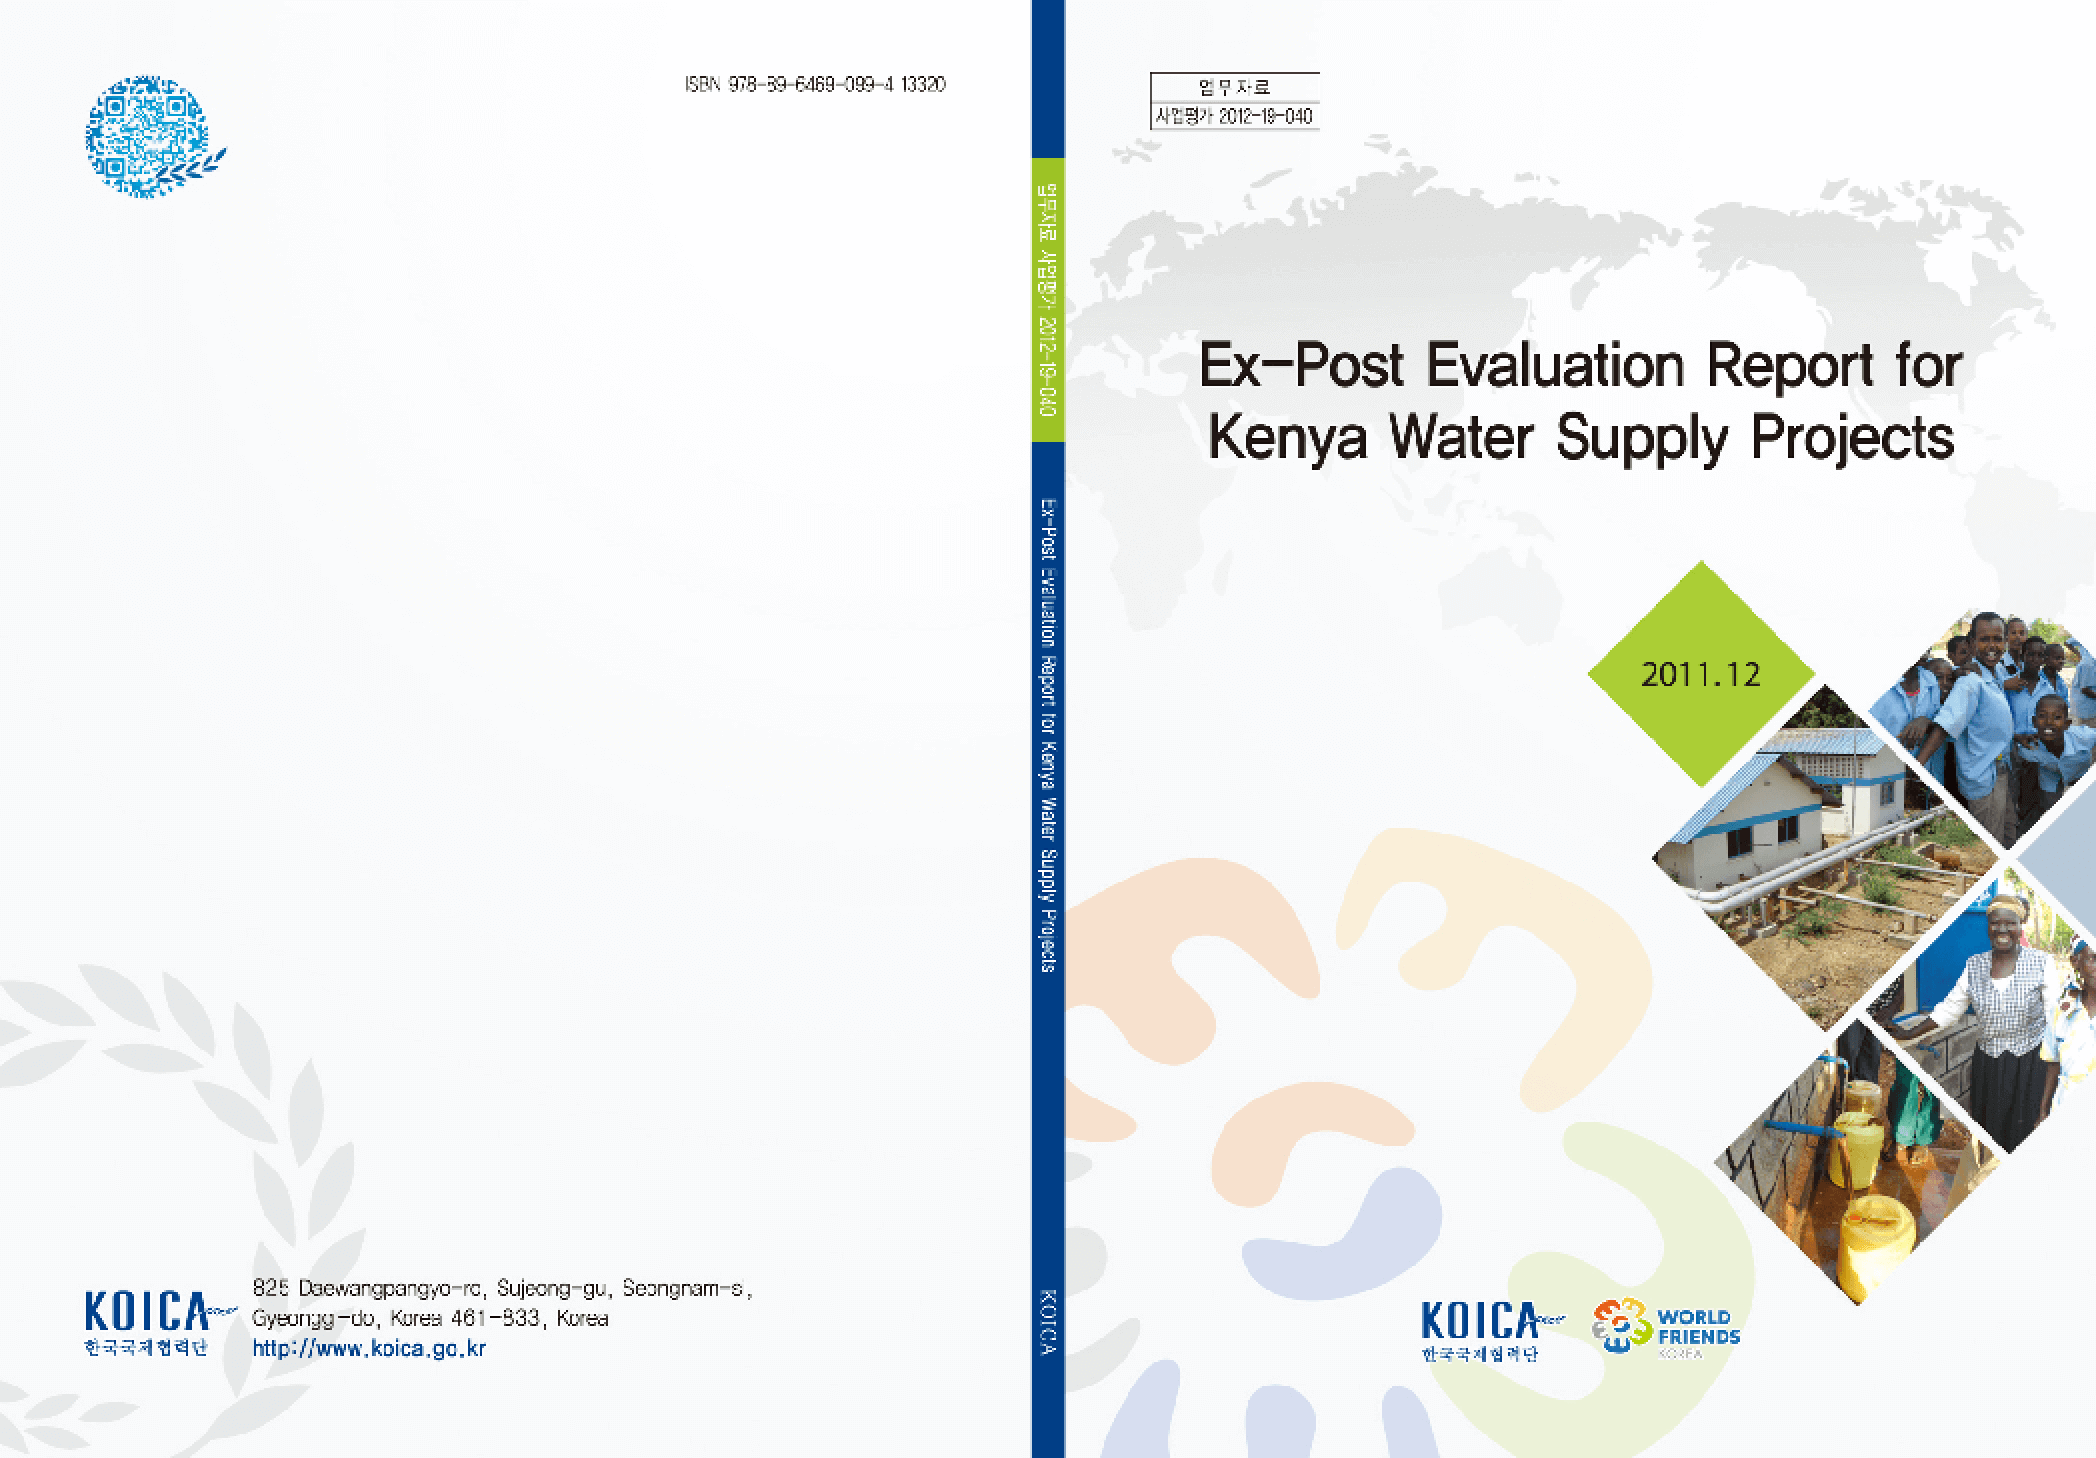 Ex-Post Evaluation Report for Kenya Water Supply Projects